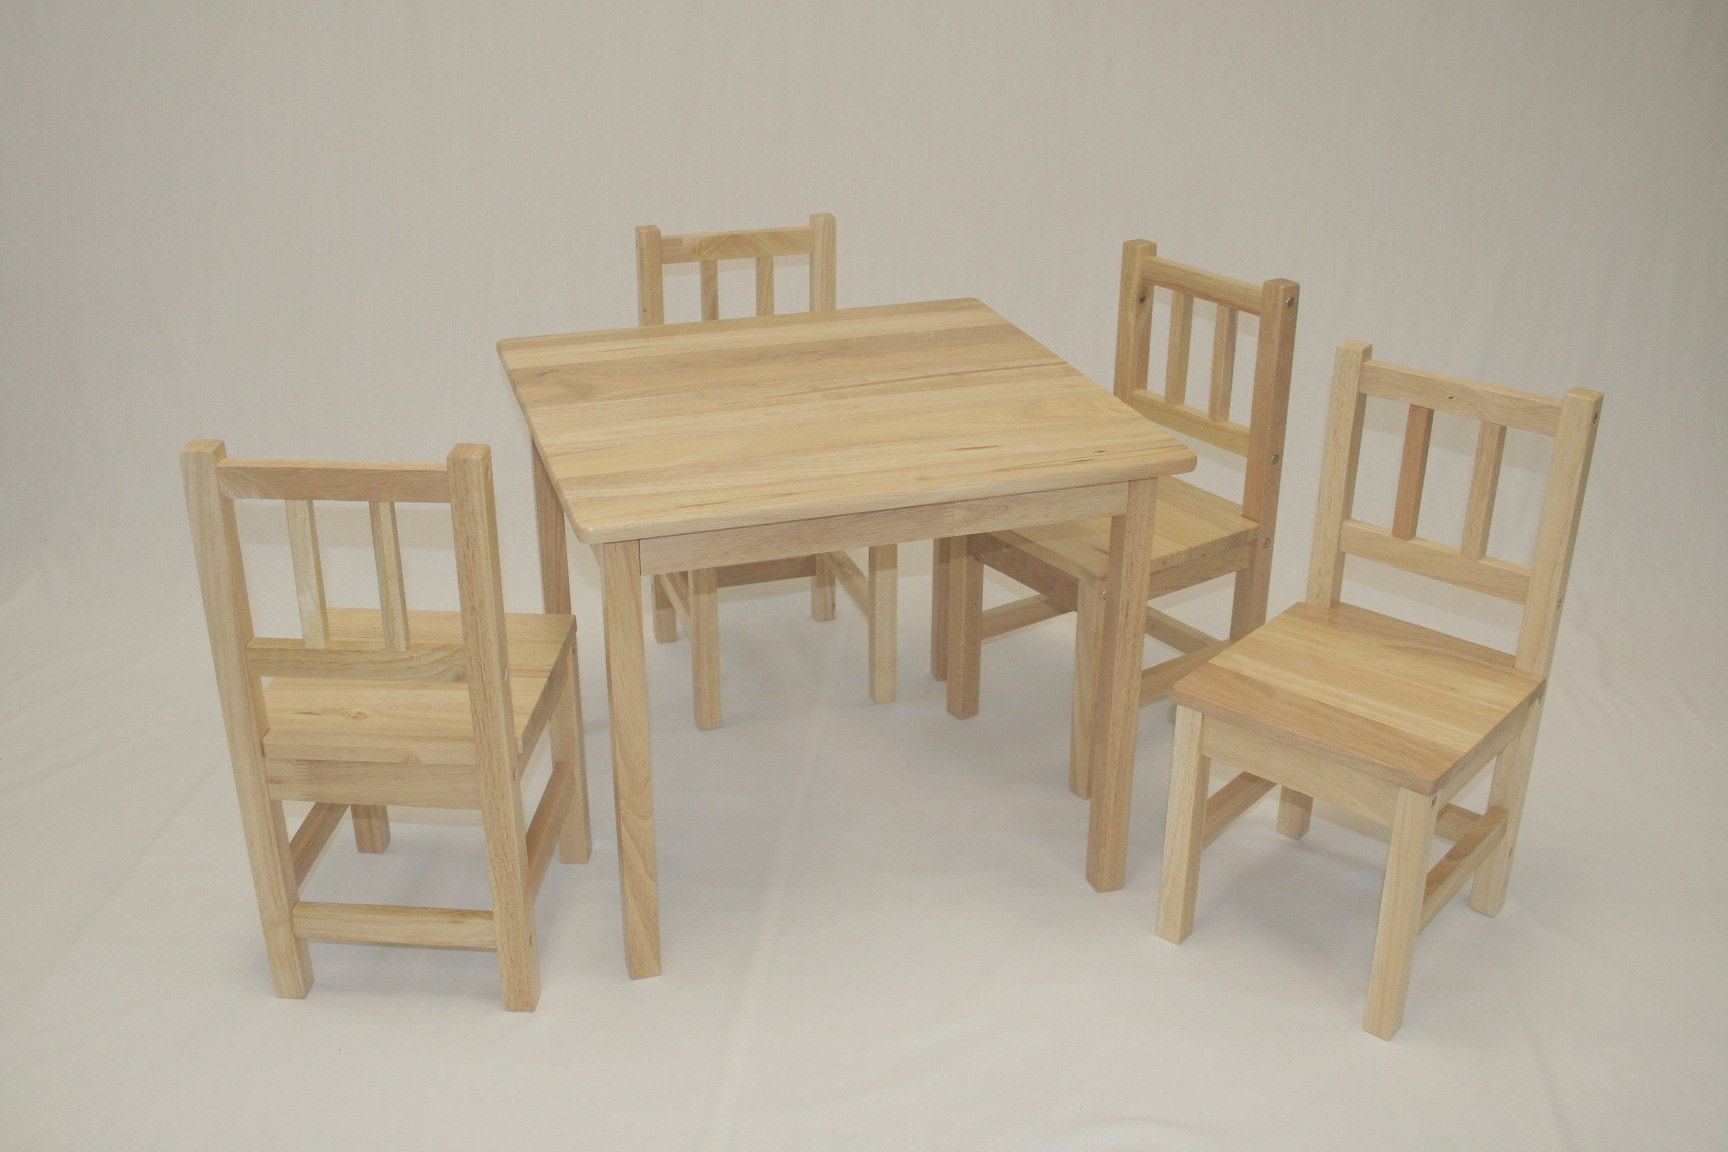 8 Prestigious Kid Friendly Kitchen Table And Chairs Photos In 2020 Wooden Toddler Table Wooden Childrens Table Wooden Table And Chairs